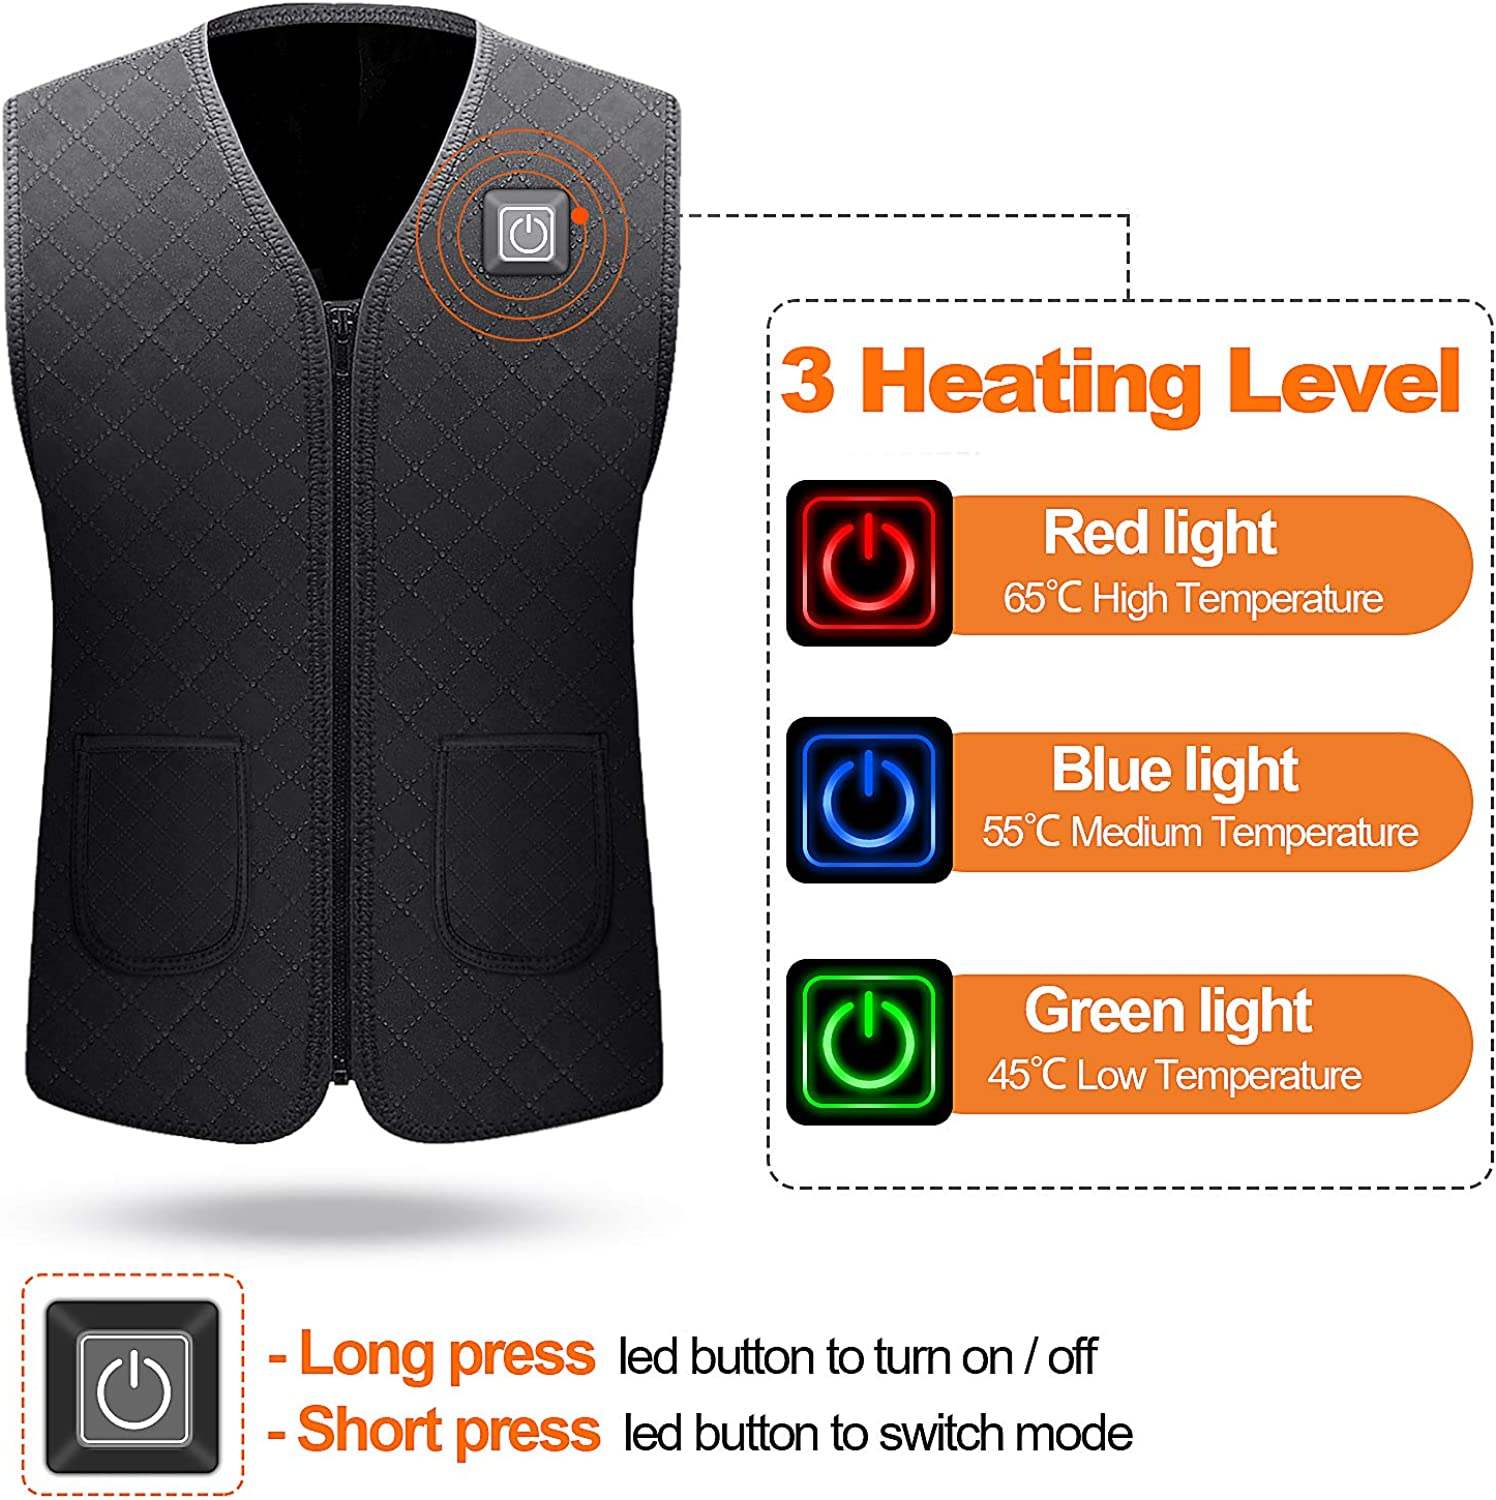 Fxexblin Electric Heated Vest 4XL Heating Jacket Clothing Warm Jacket Gilet with USB Charging